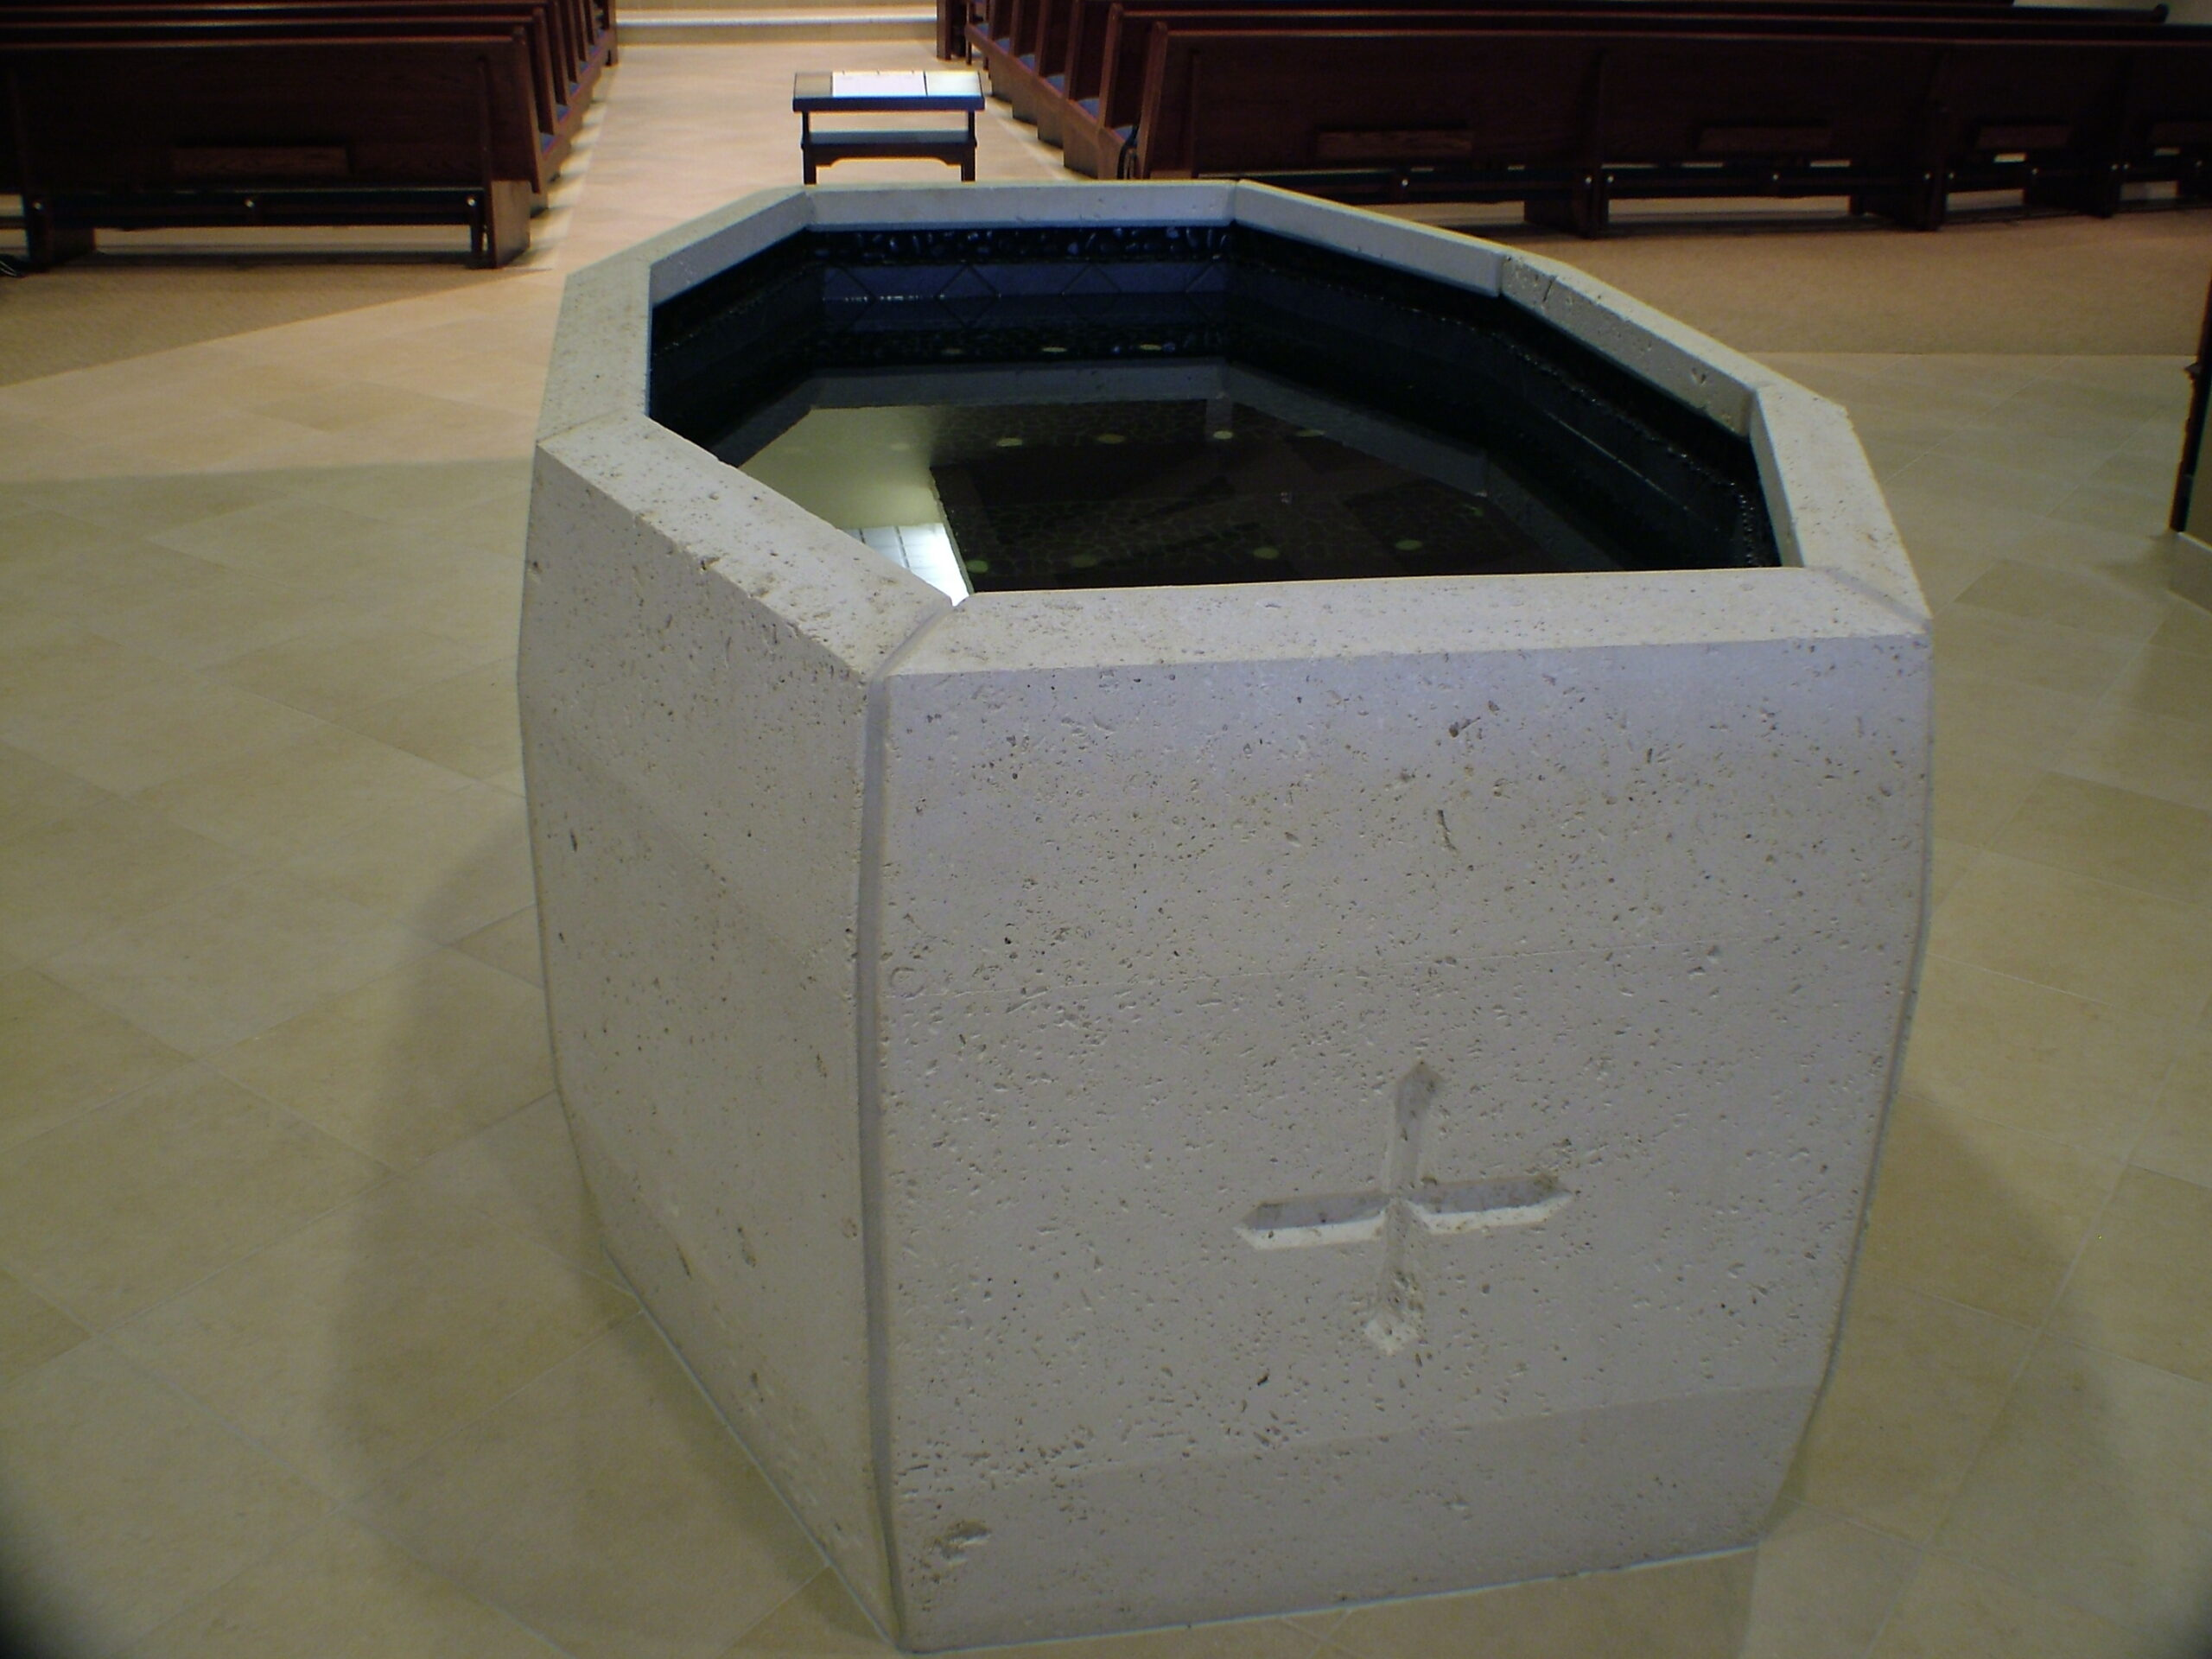 baptismal-font-st-marks-episcopal-corpus-christi-tx-side-view-by-water-structures.JPG